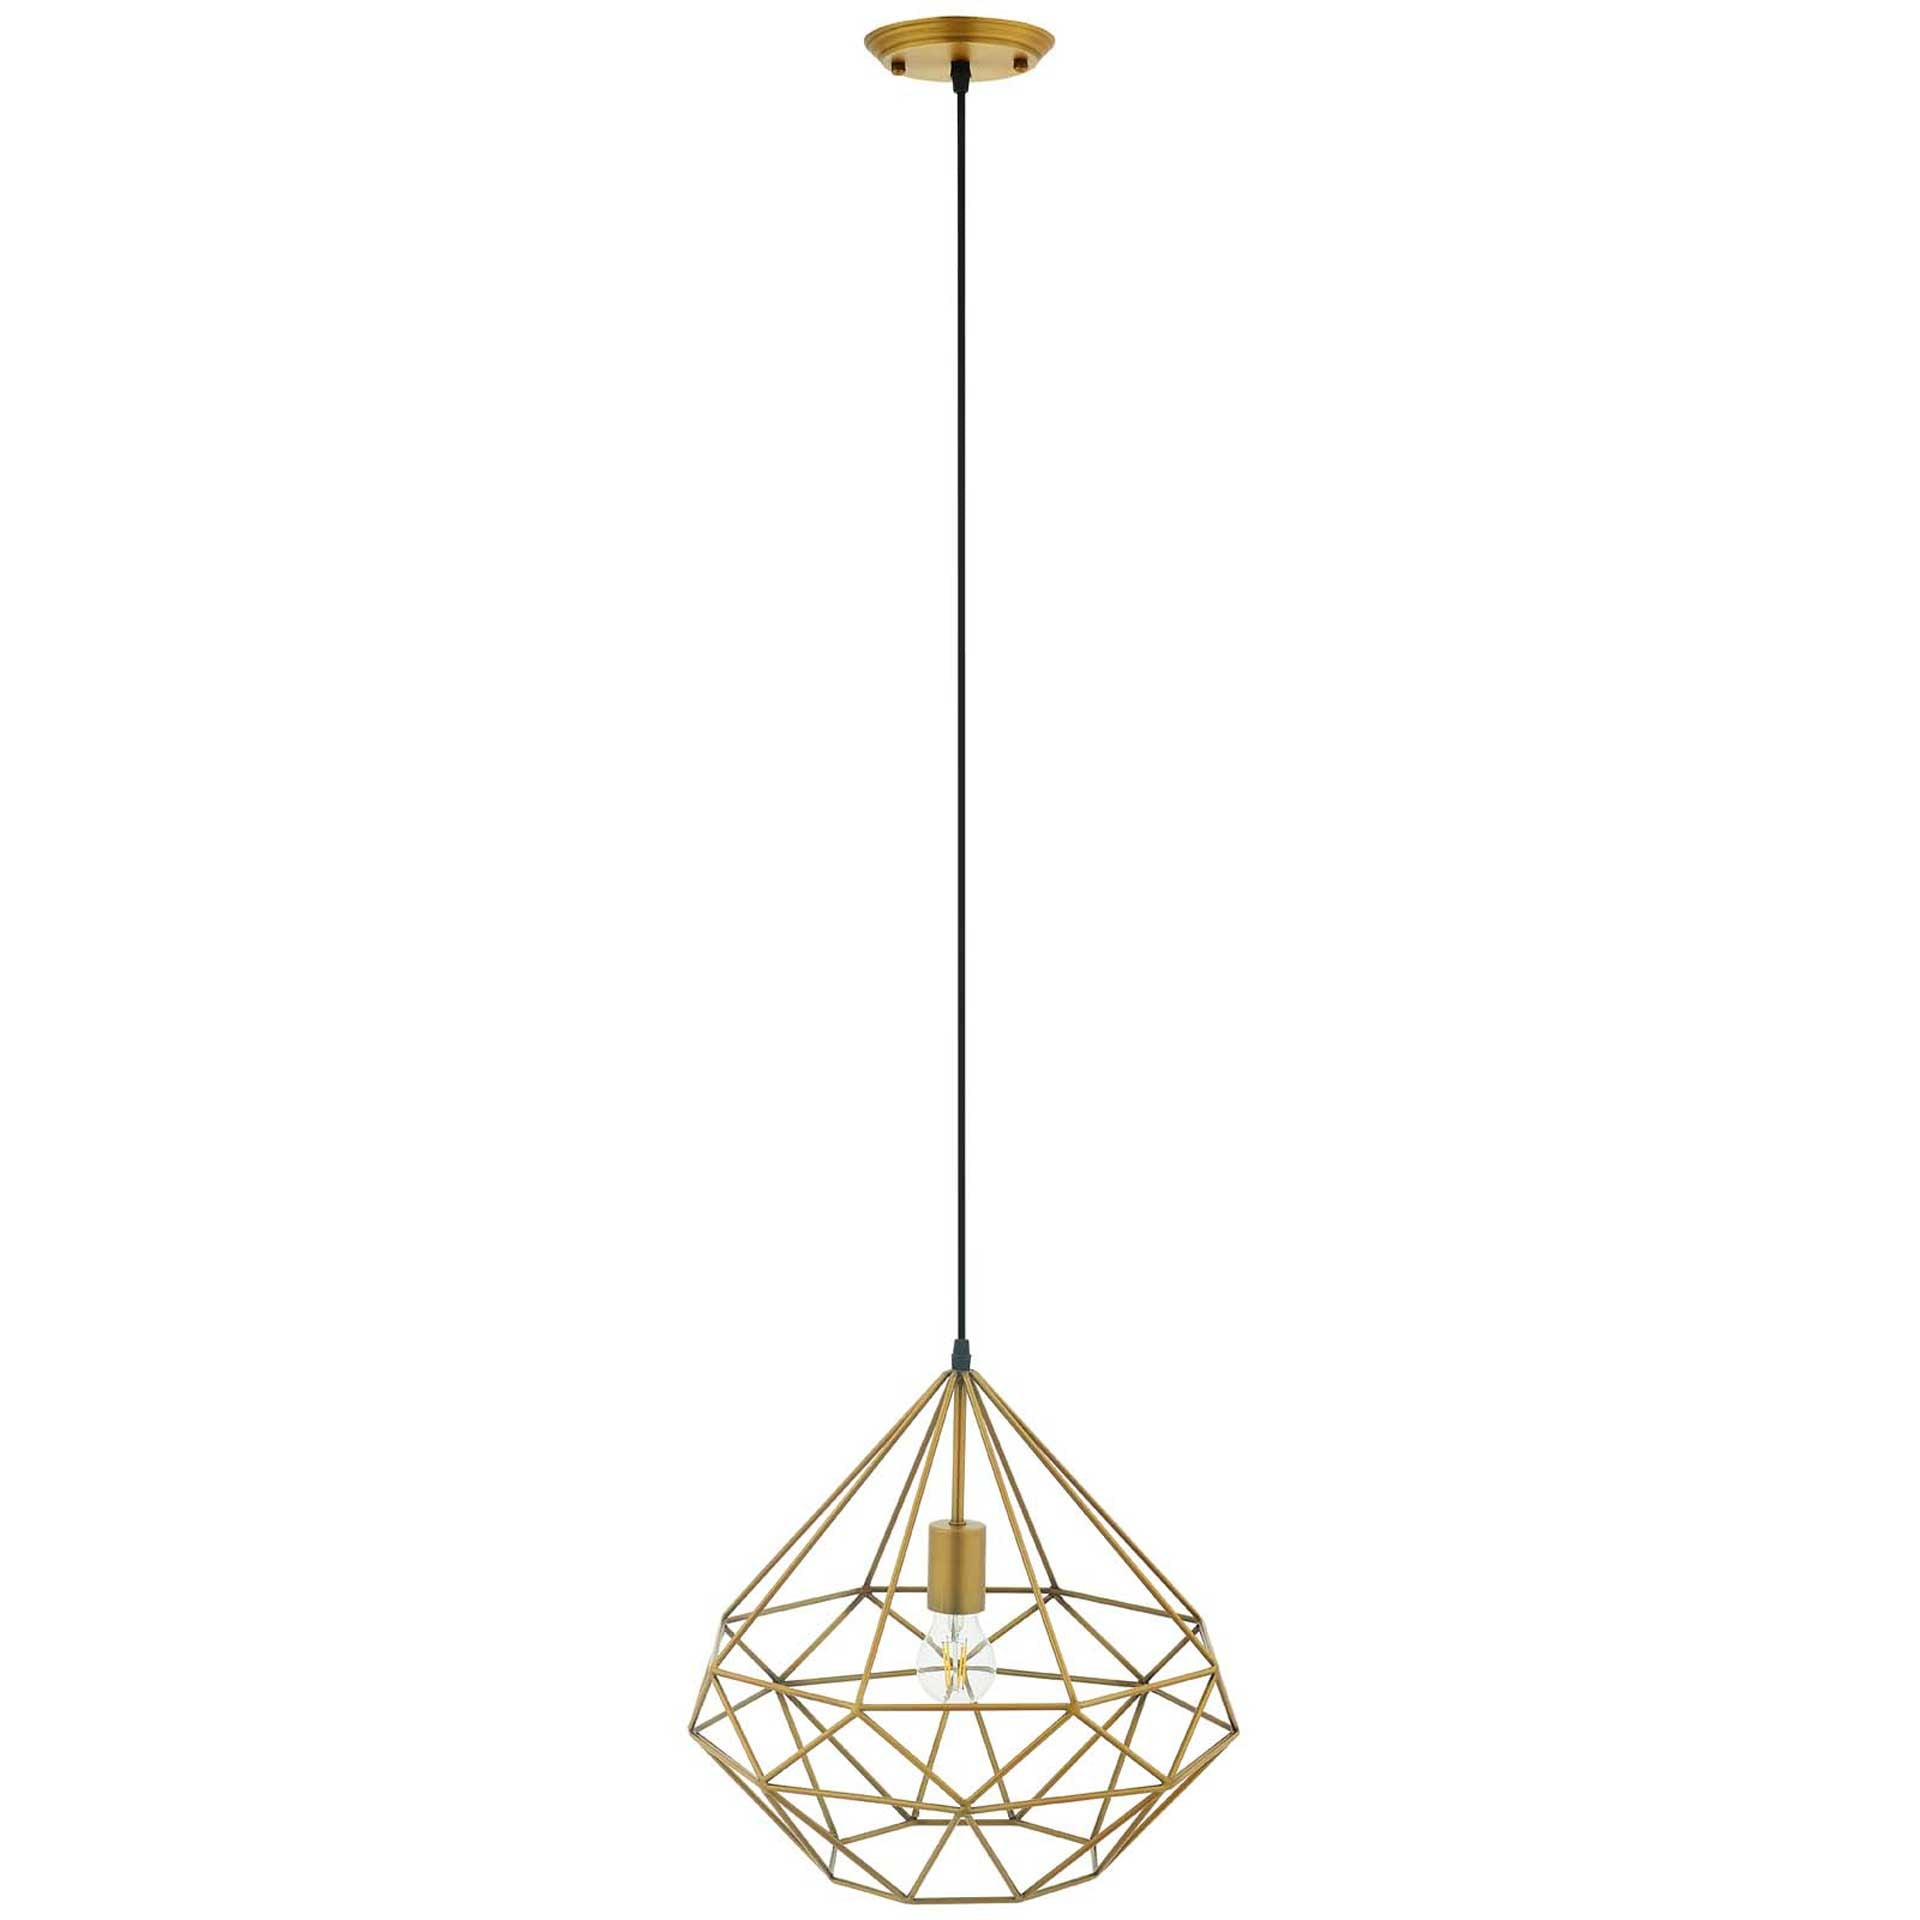 Ryder Diamond-Shaped Pendant Light Brass Gold